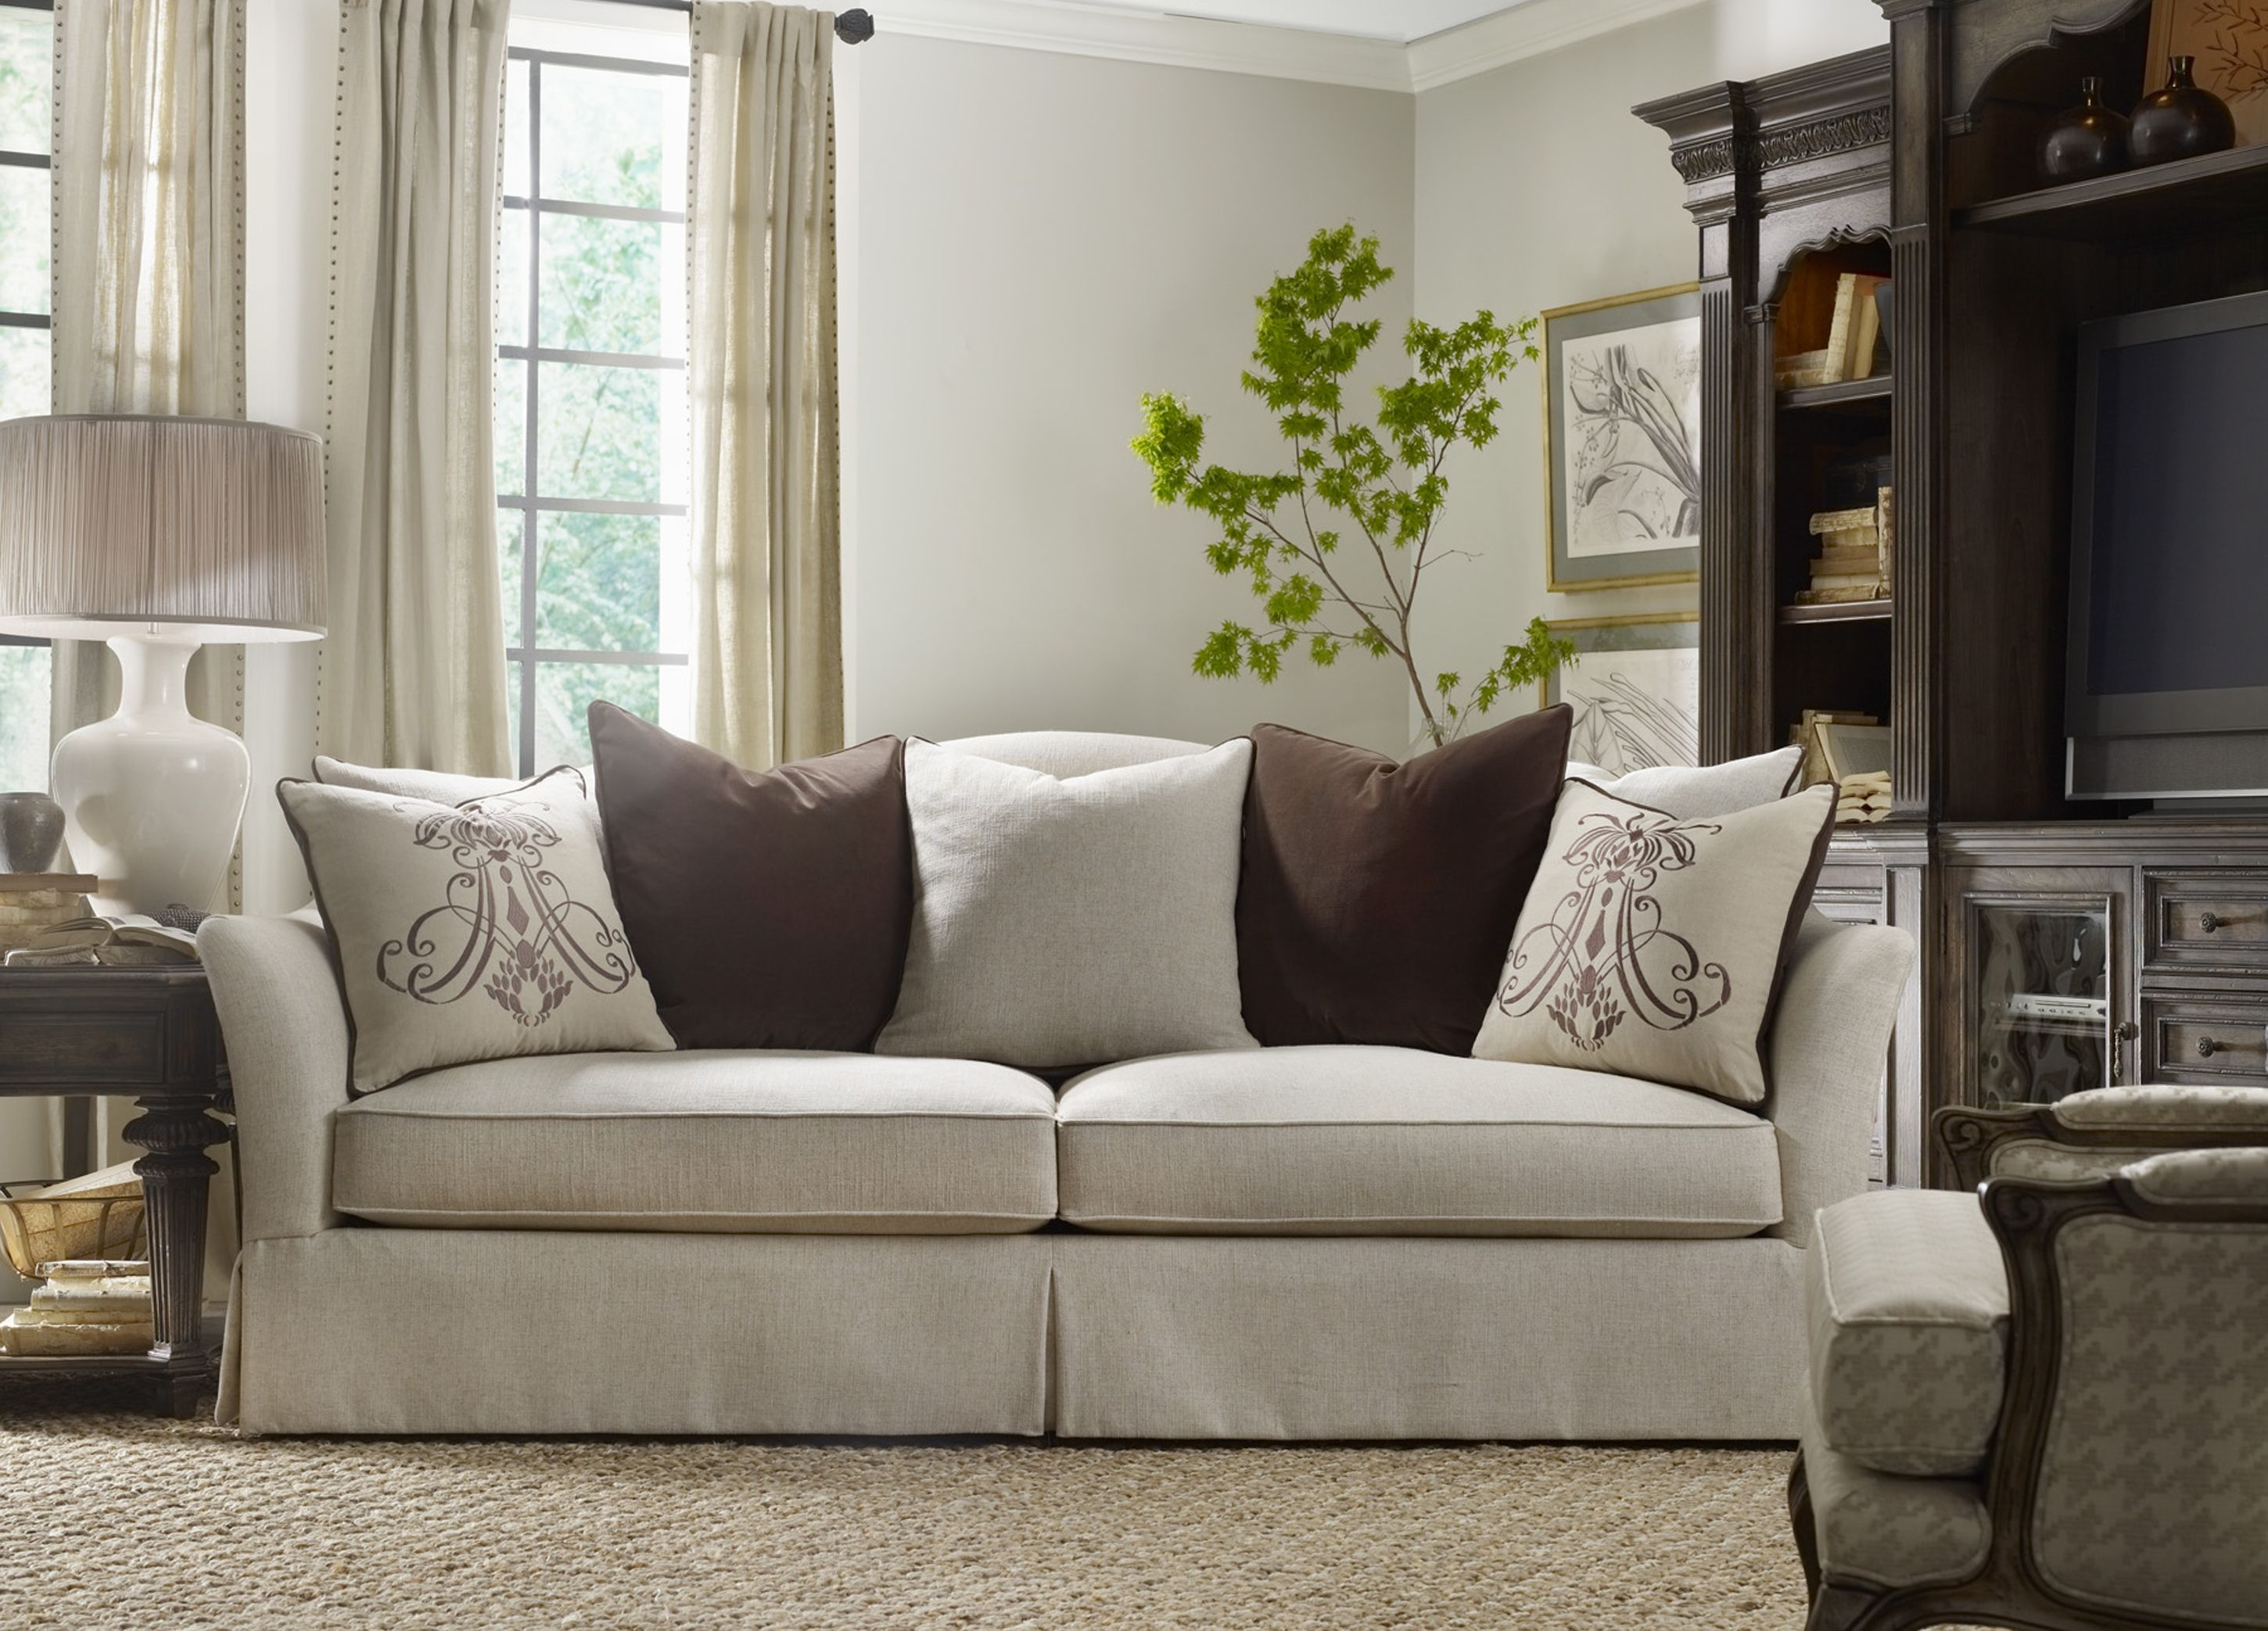 Best The Beauty Of A White Sofa And Oversized Pillows 640 x 480